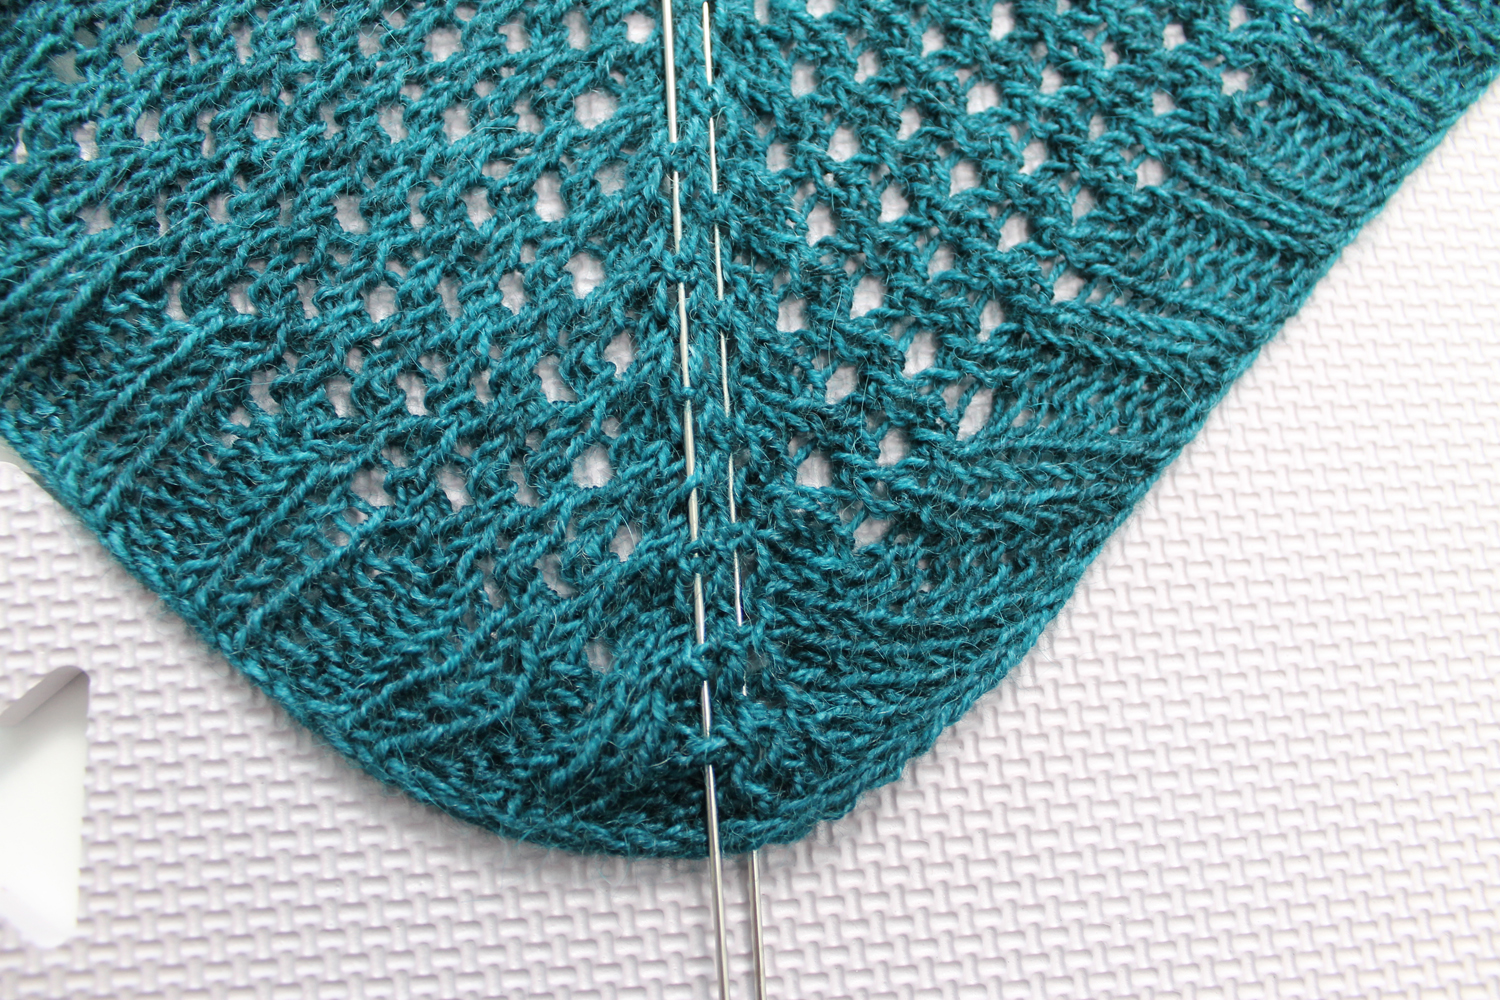 Blocking knit shawl with wires